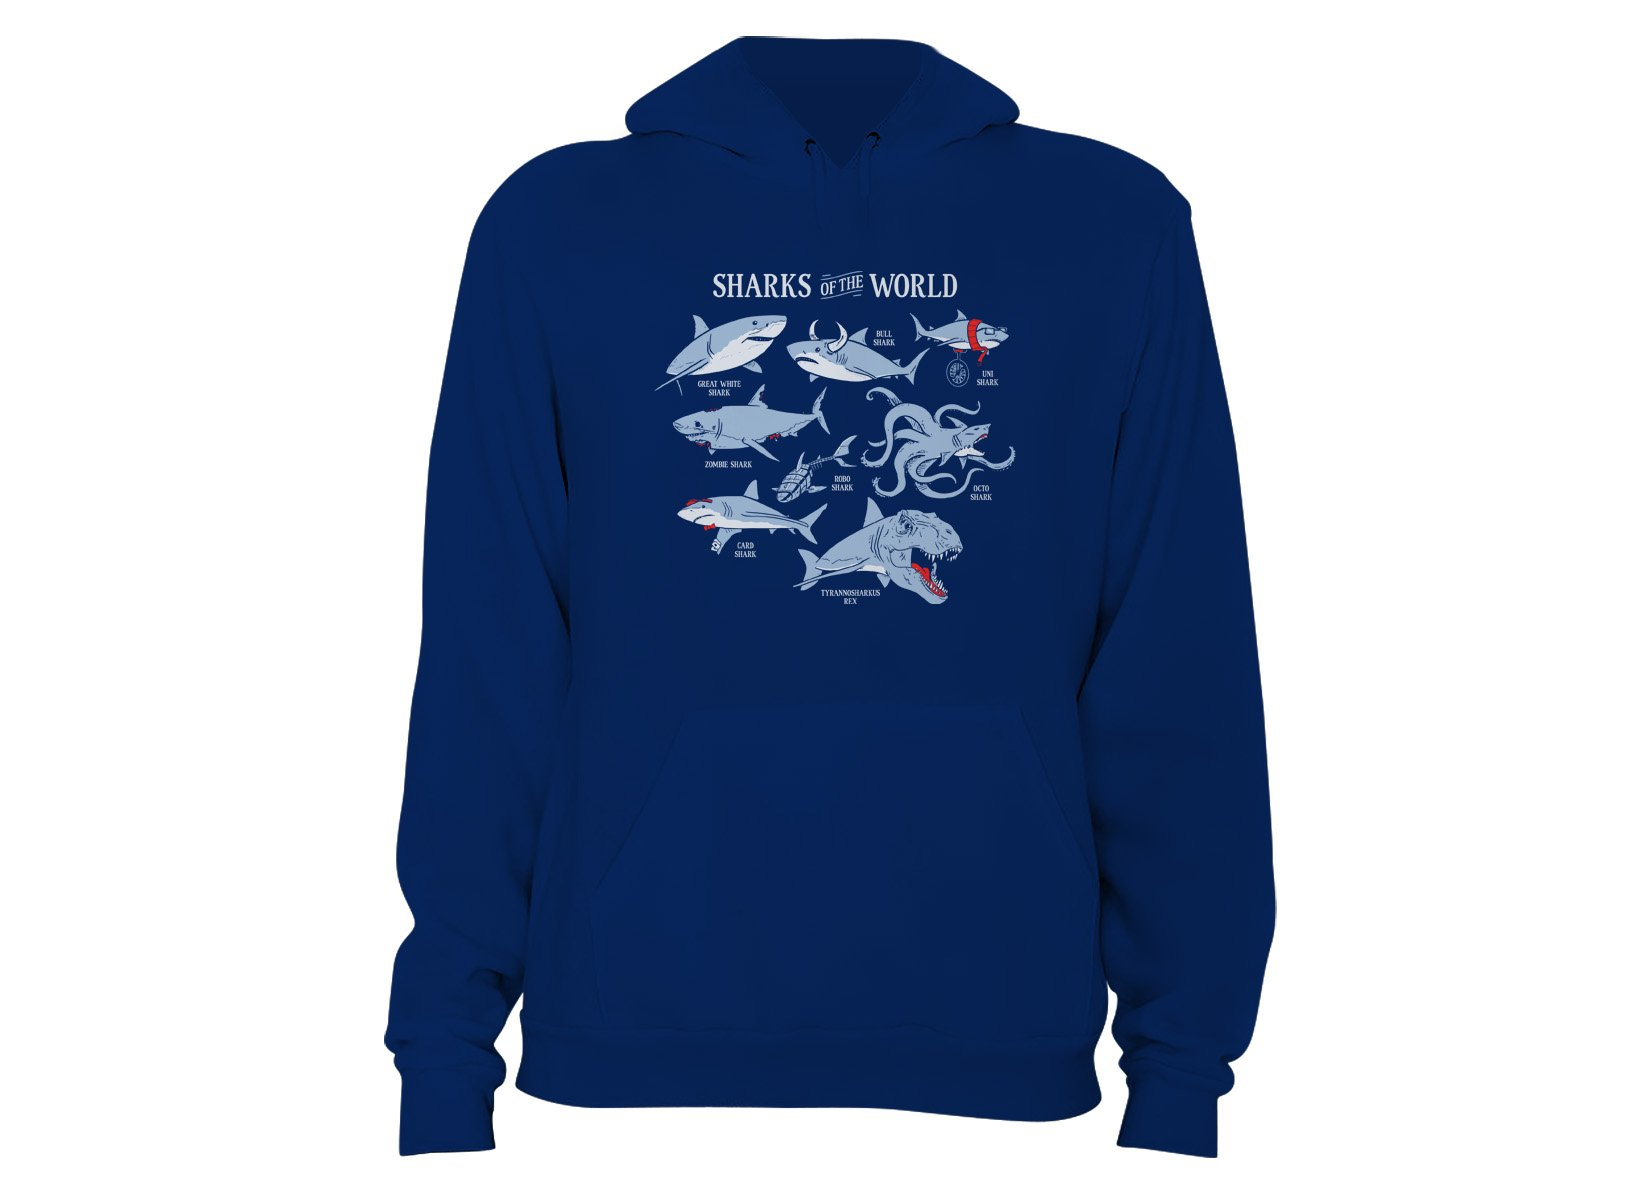 Sharks Of The World on Hoodie